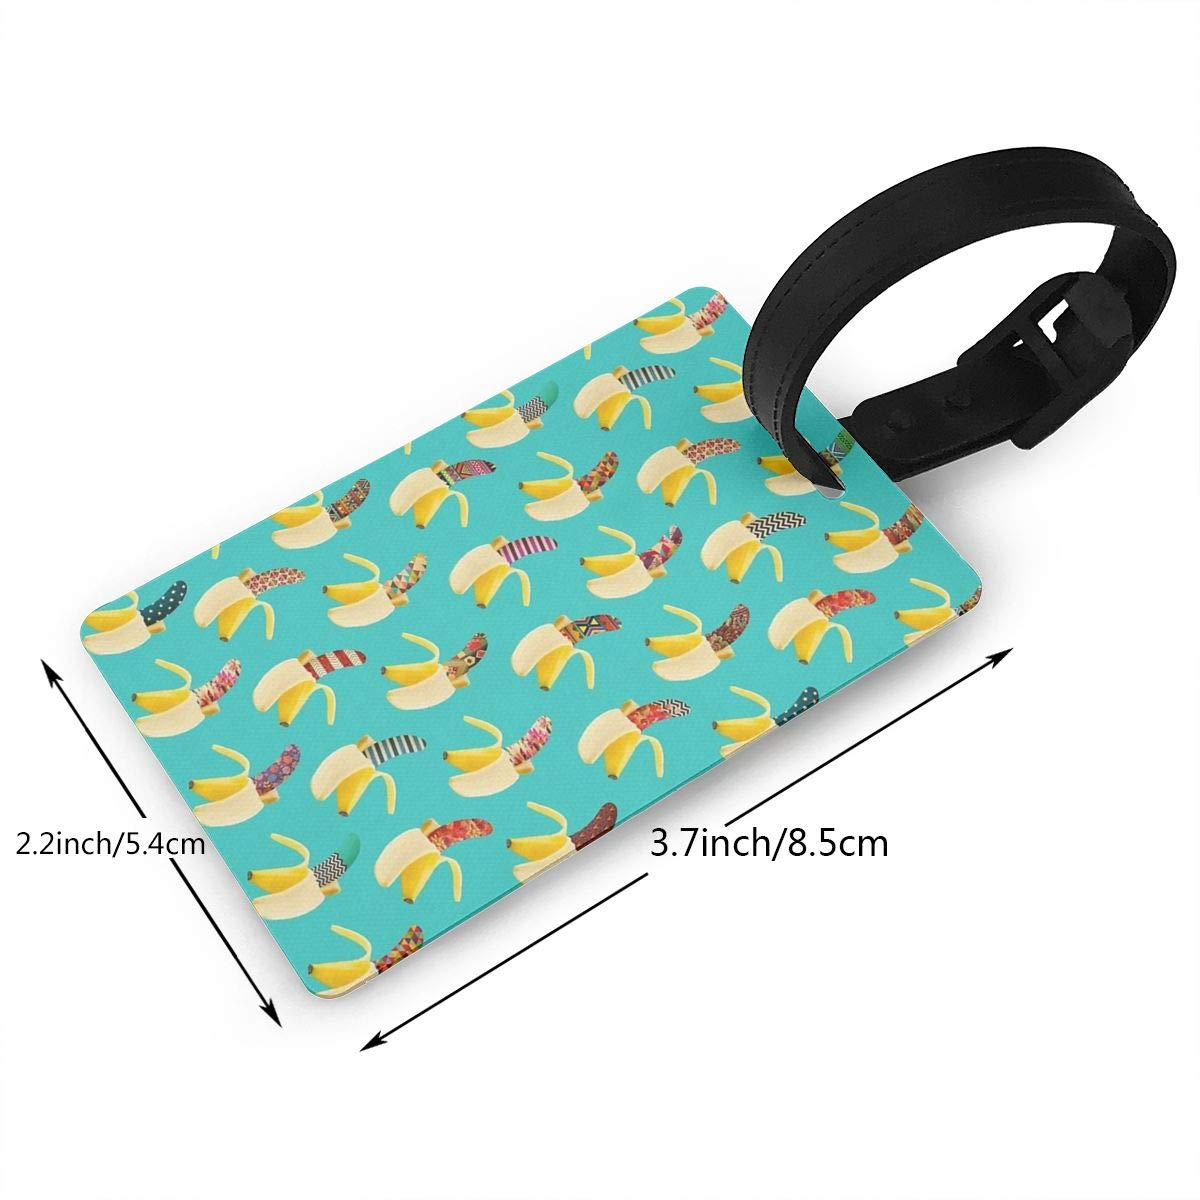 Set of 2 Anna Banana II Luggage Tags Suitcase Labels Bag Travel Accessories